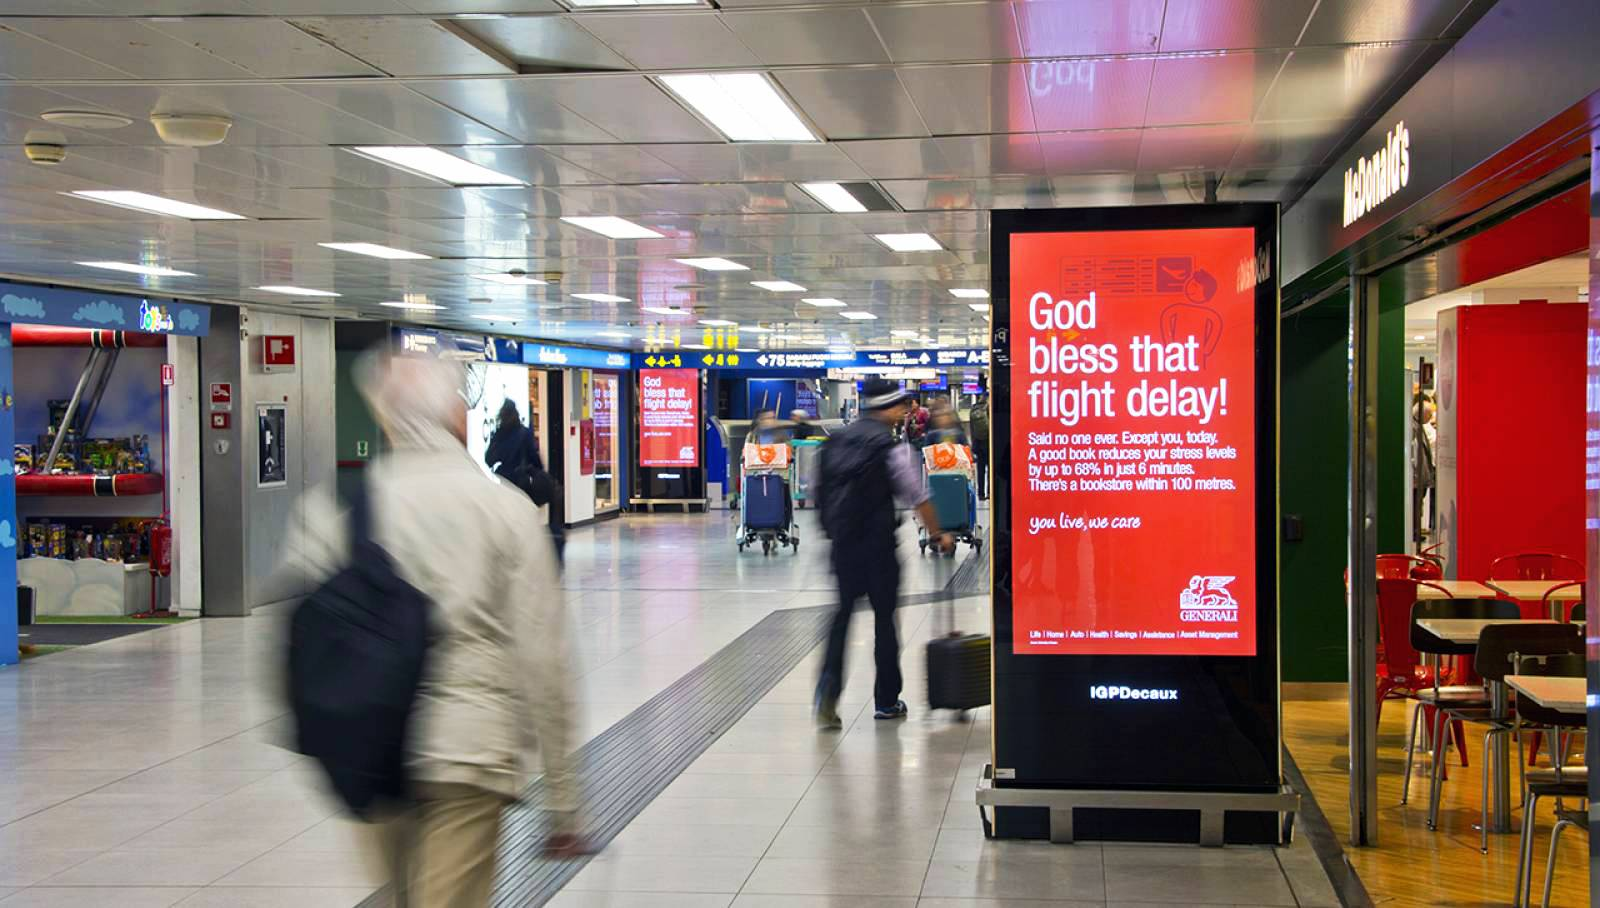 Linate airport advertising IGPDecaux airport digital network for Generali